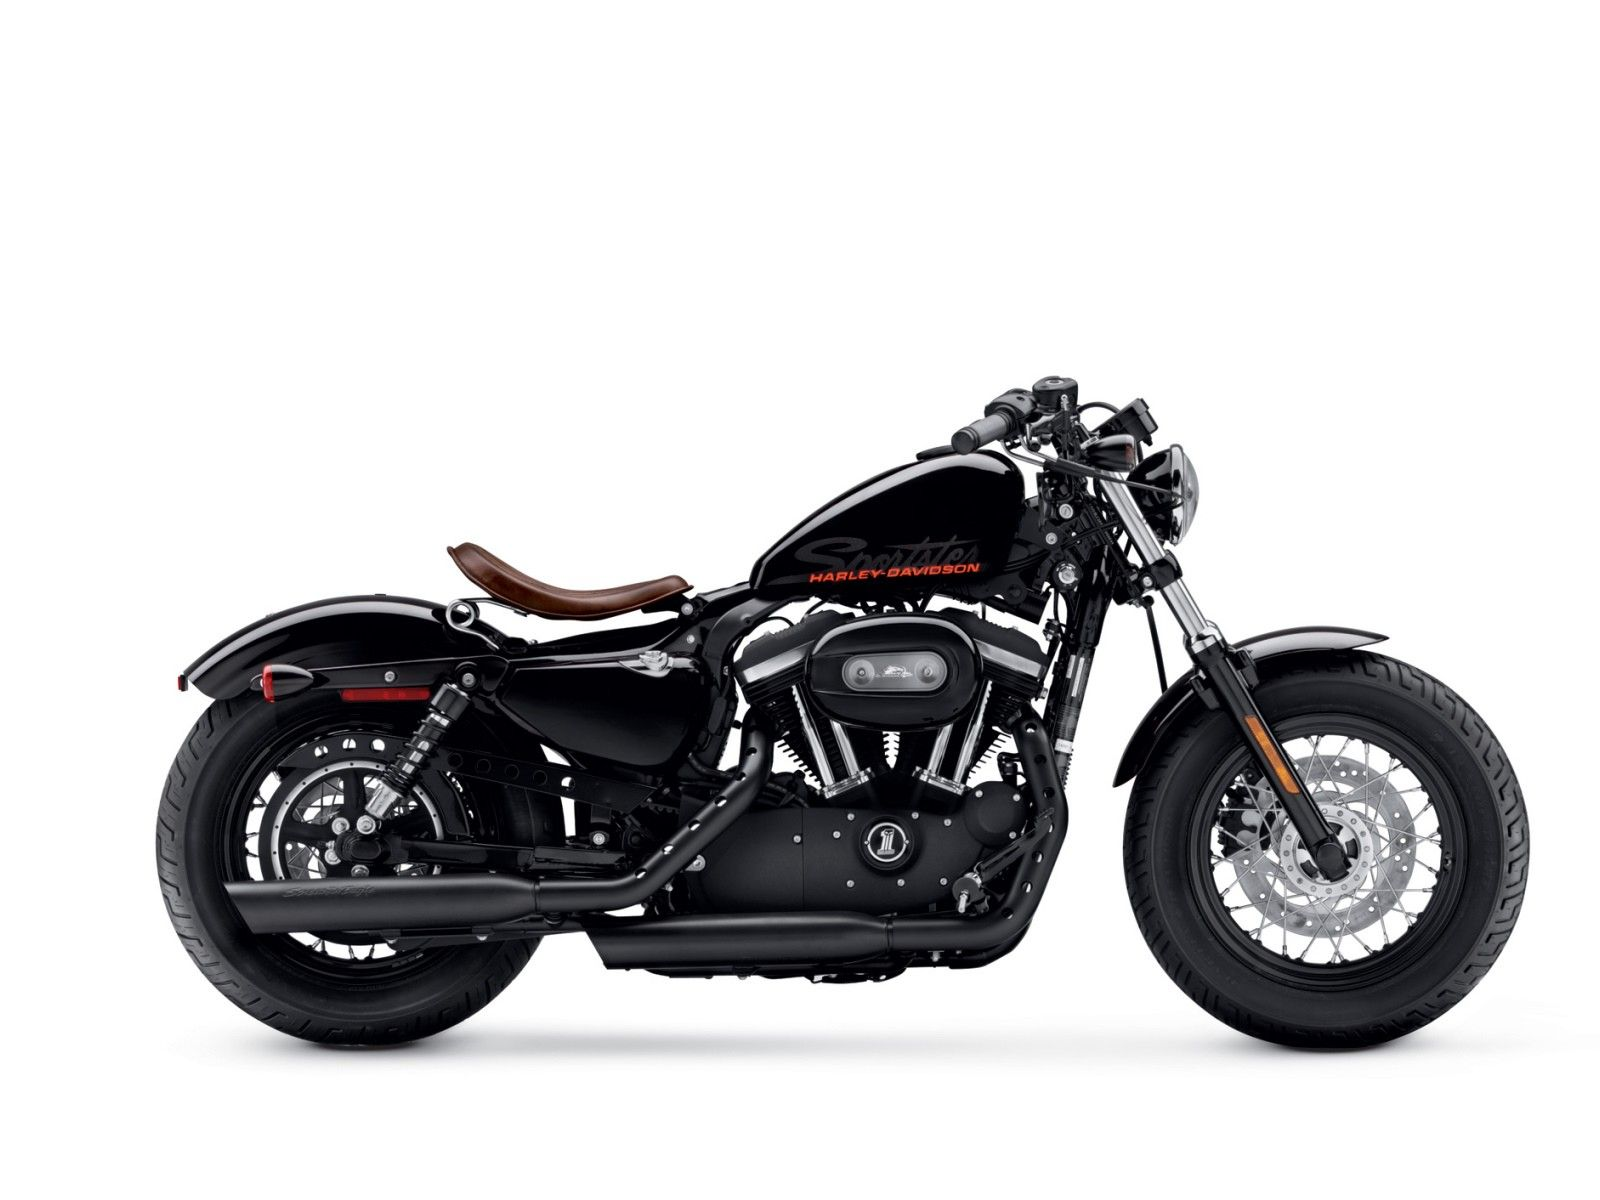 harley davidson forty eight motivation harley davidson. Black Bedroom Furniture Sets. Home Design Ideas